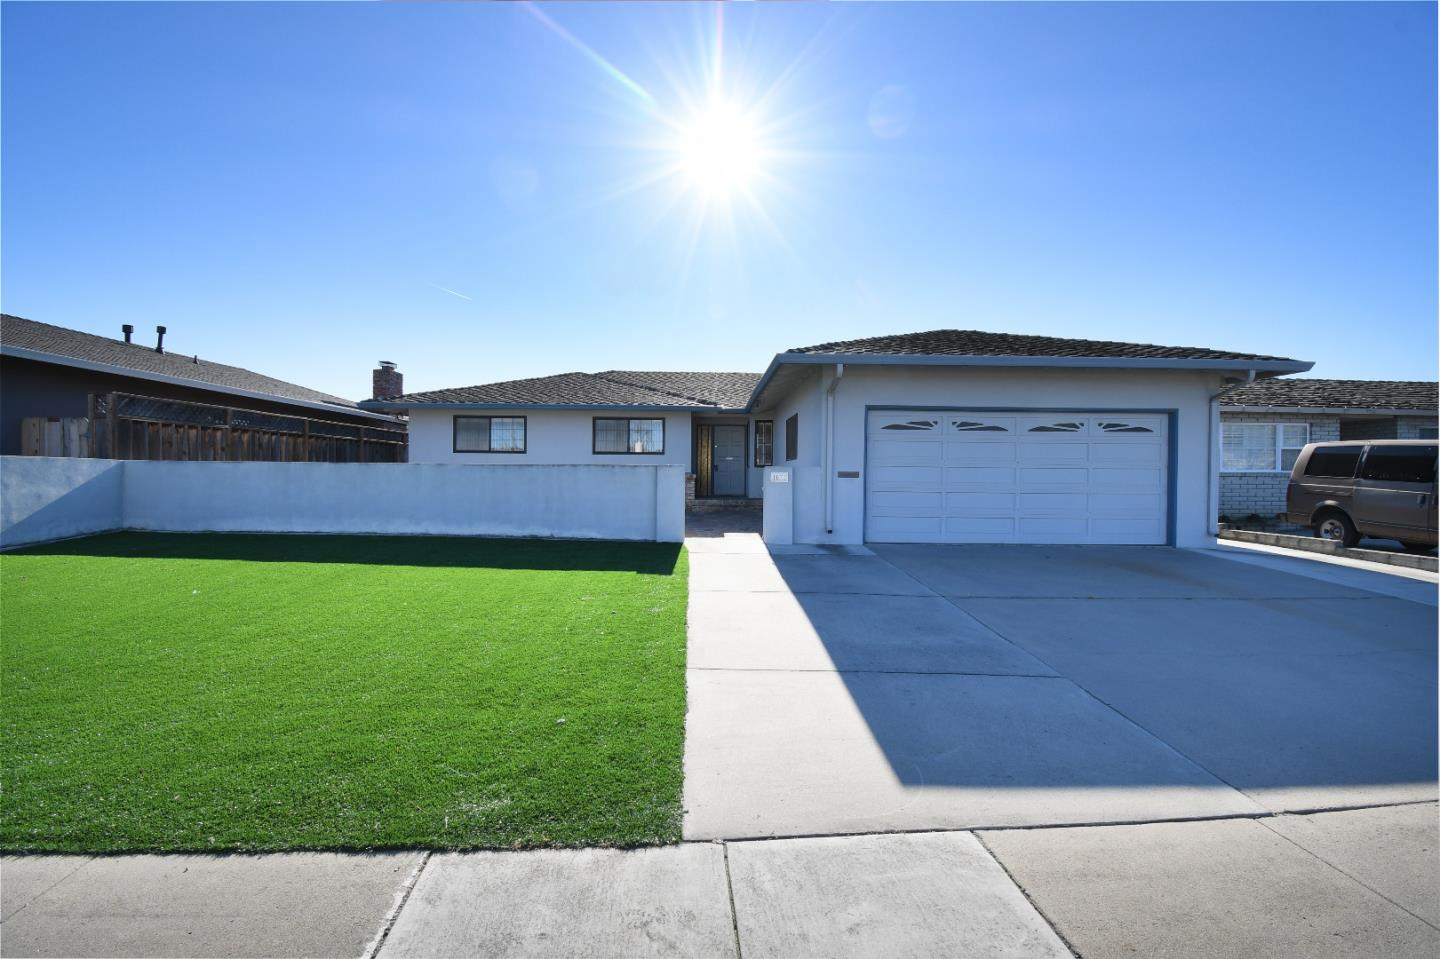 Detail Gallery Image 1 of 16 For 1073 Sierra Madre Dr, Salinas, CA, 93901 - 3 Beds | 2 Baths